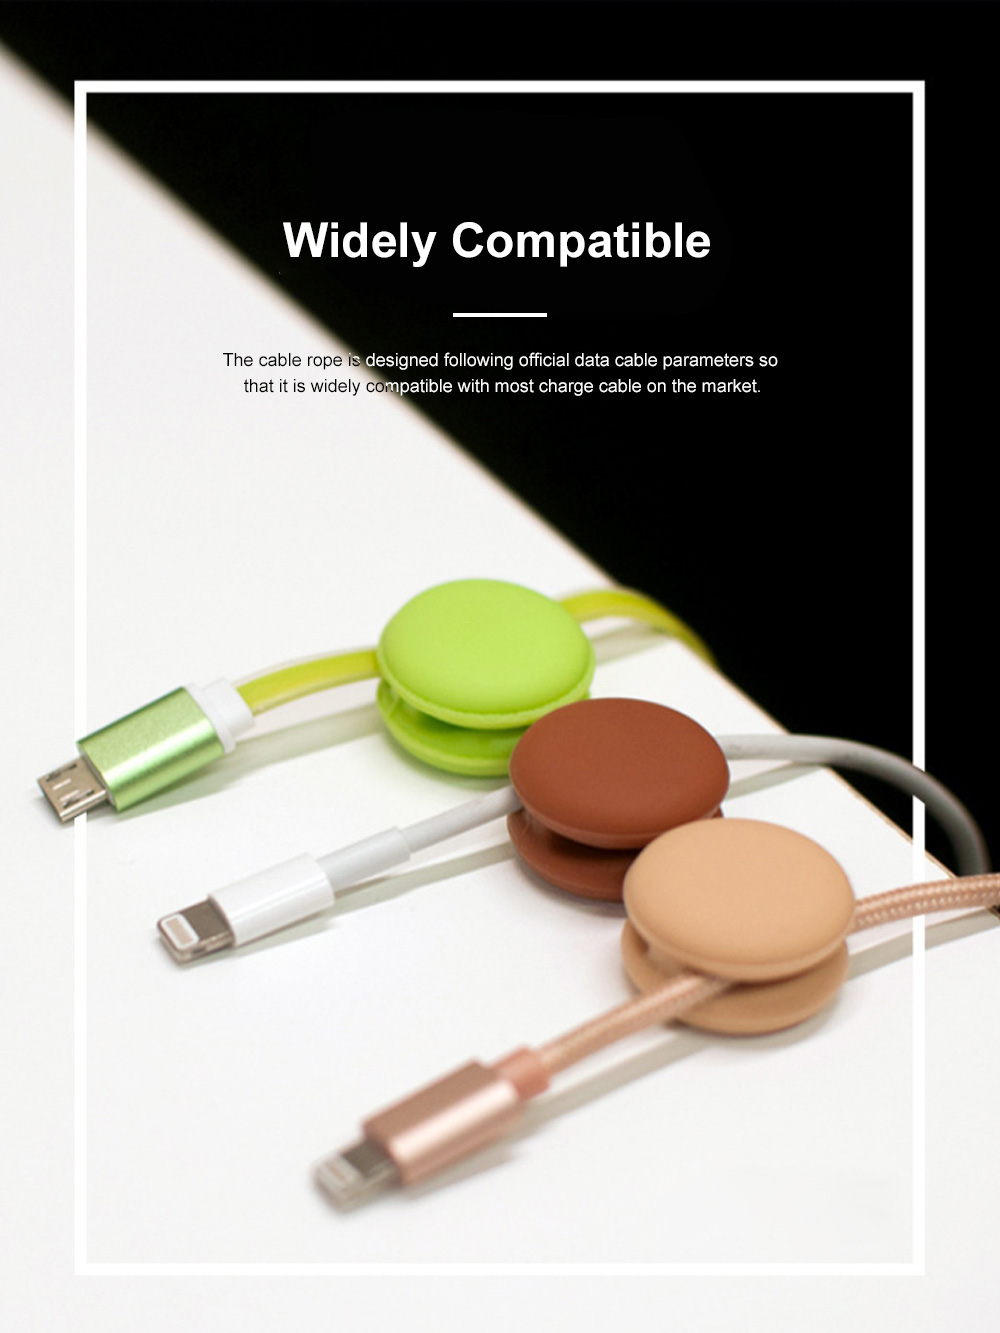 IWO Multifunctional Macarons Cable Wire Wrapper for Office Family Use Creative Convenient Wire Fixing Gadget Easy to Use Cable Rope 4